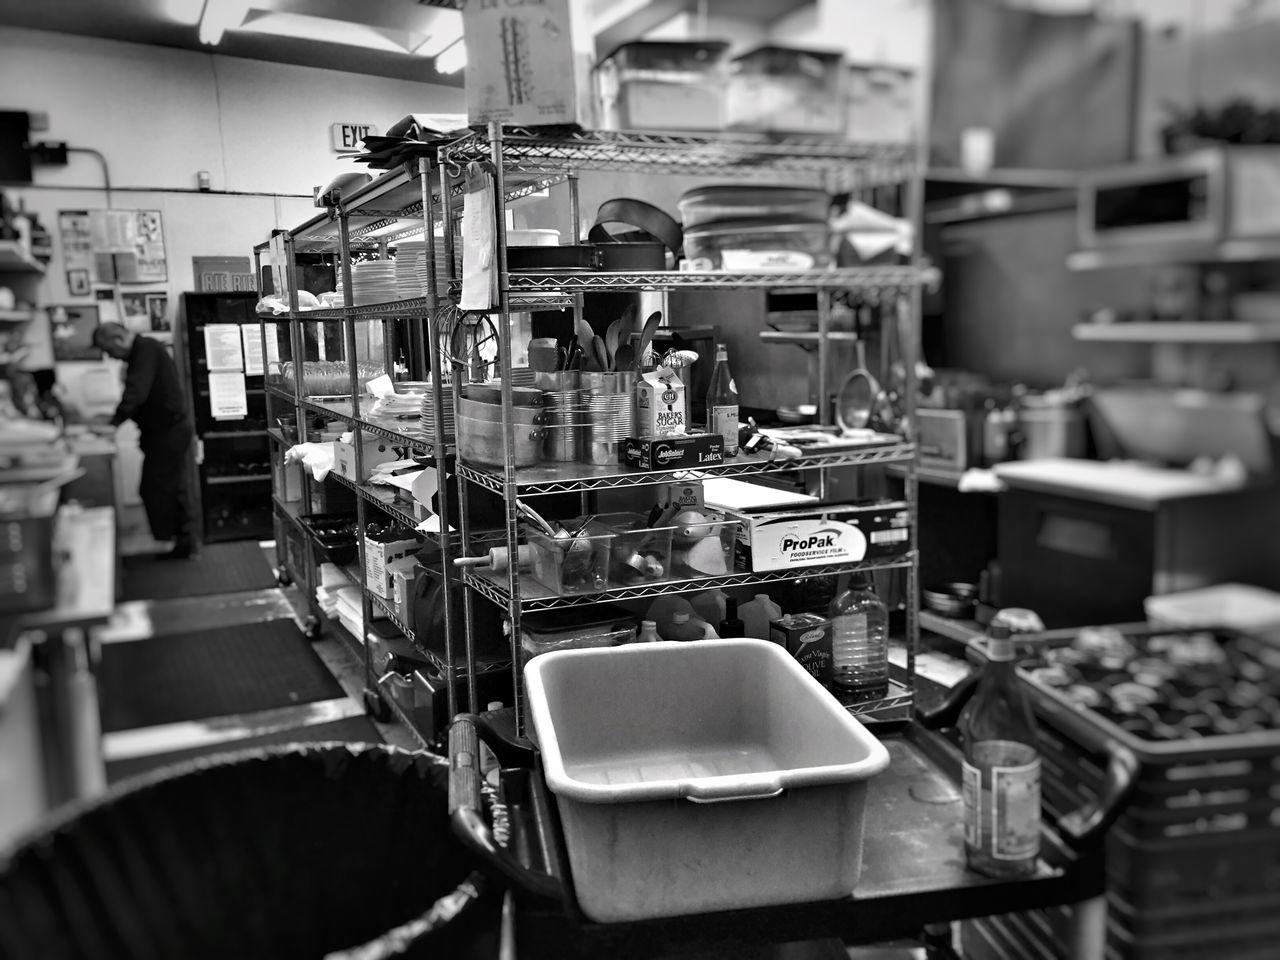 The calm before the storm. Workplace Working Restaurant Restaurant Kitchen Professional Kitchen Kitchen Calm Before The Storm Dishwasher Dishwashing Dishes Dishwashing Station Food Blackandwhite Photography Black And White Black & White Composition Monochrome Blackandwhite Black And White Photography High Contrast Black&white Monochromatic Hello World Enjoying Life Taking Photos